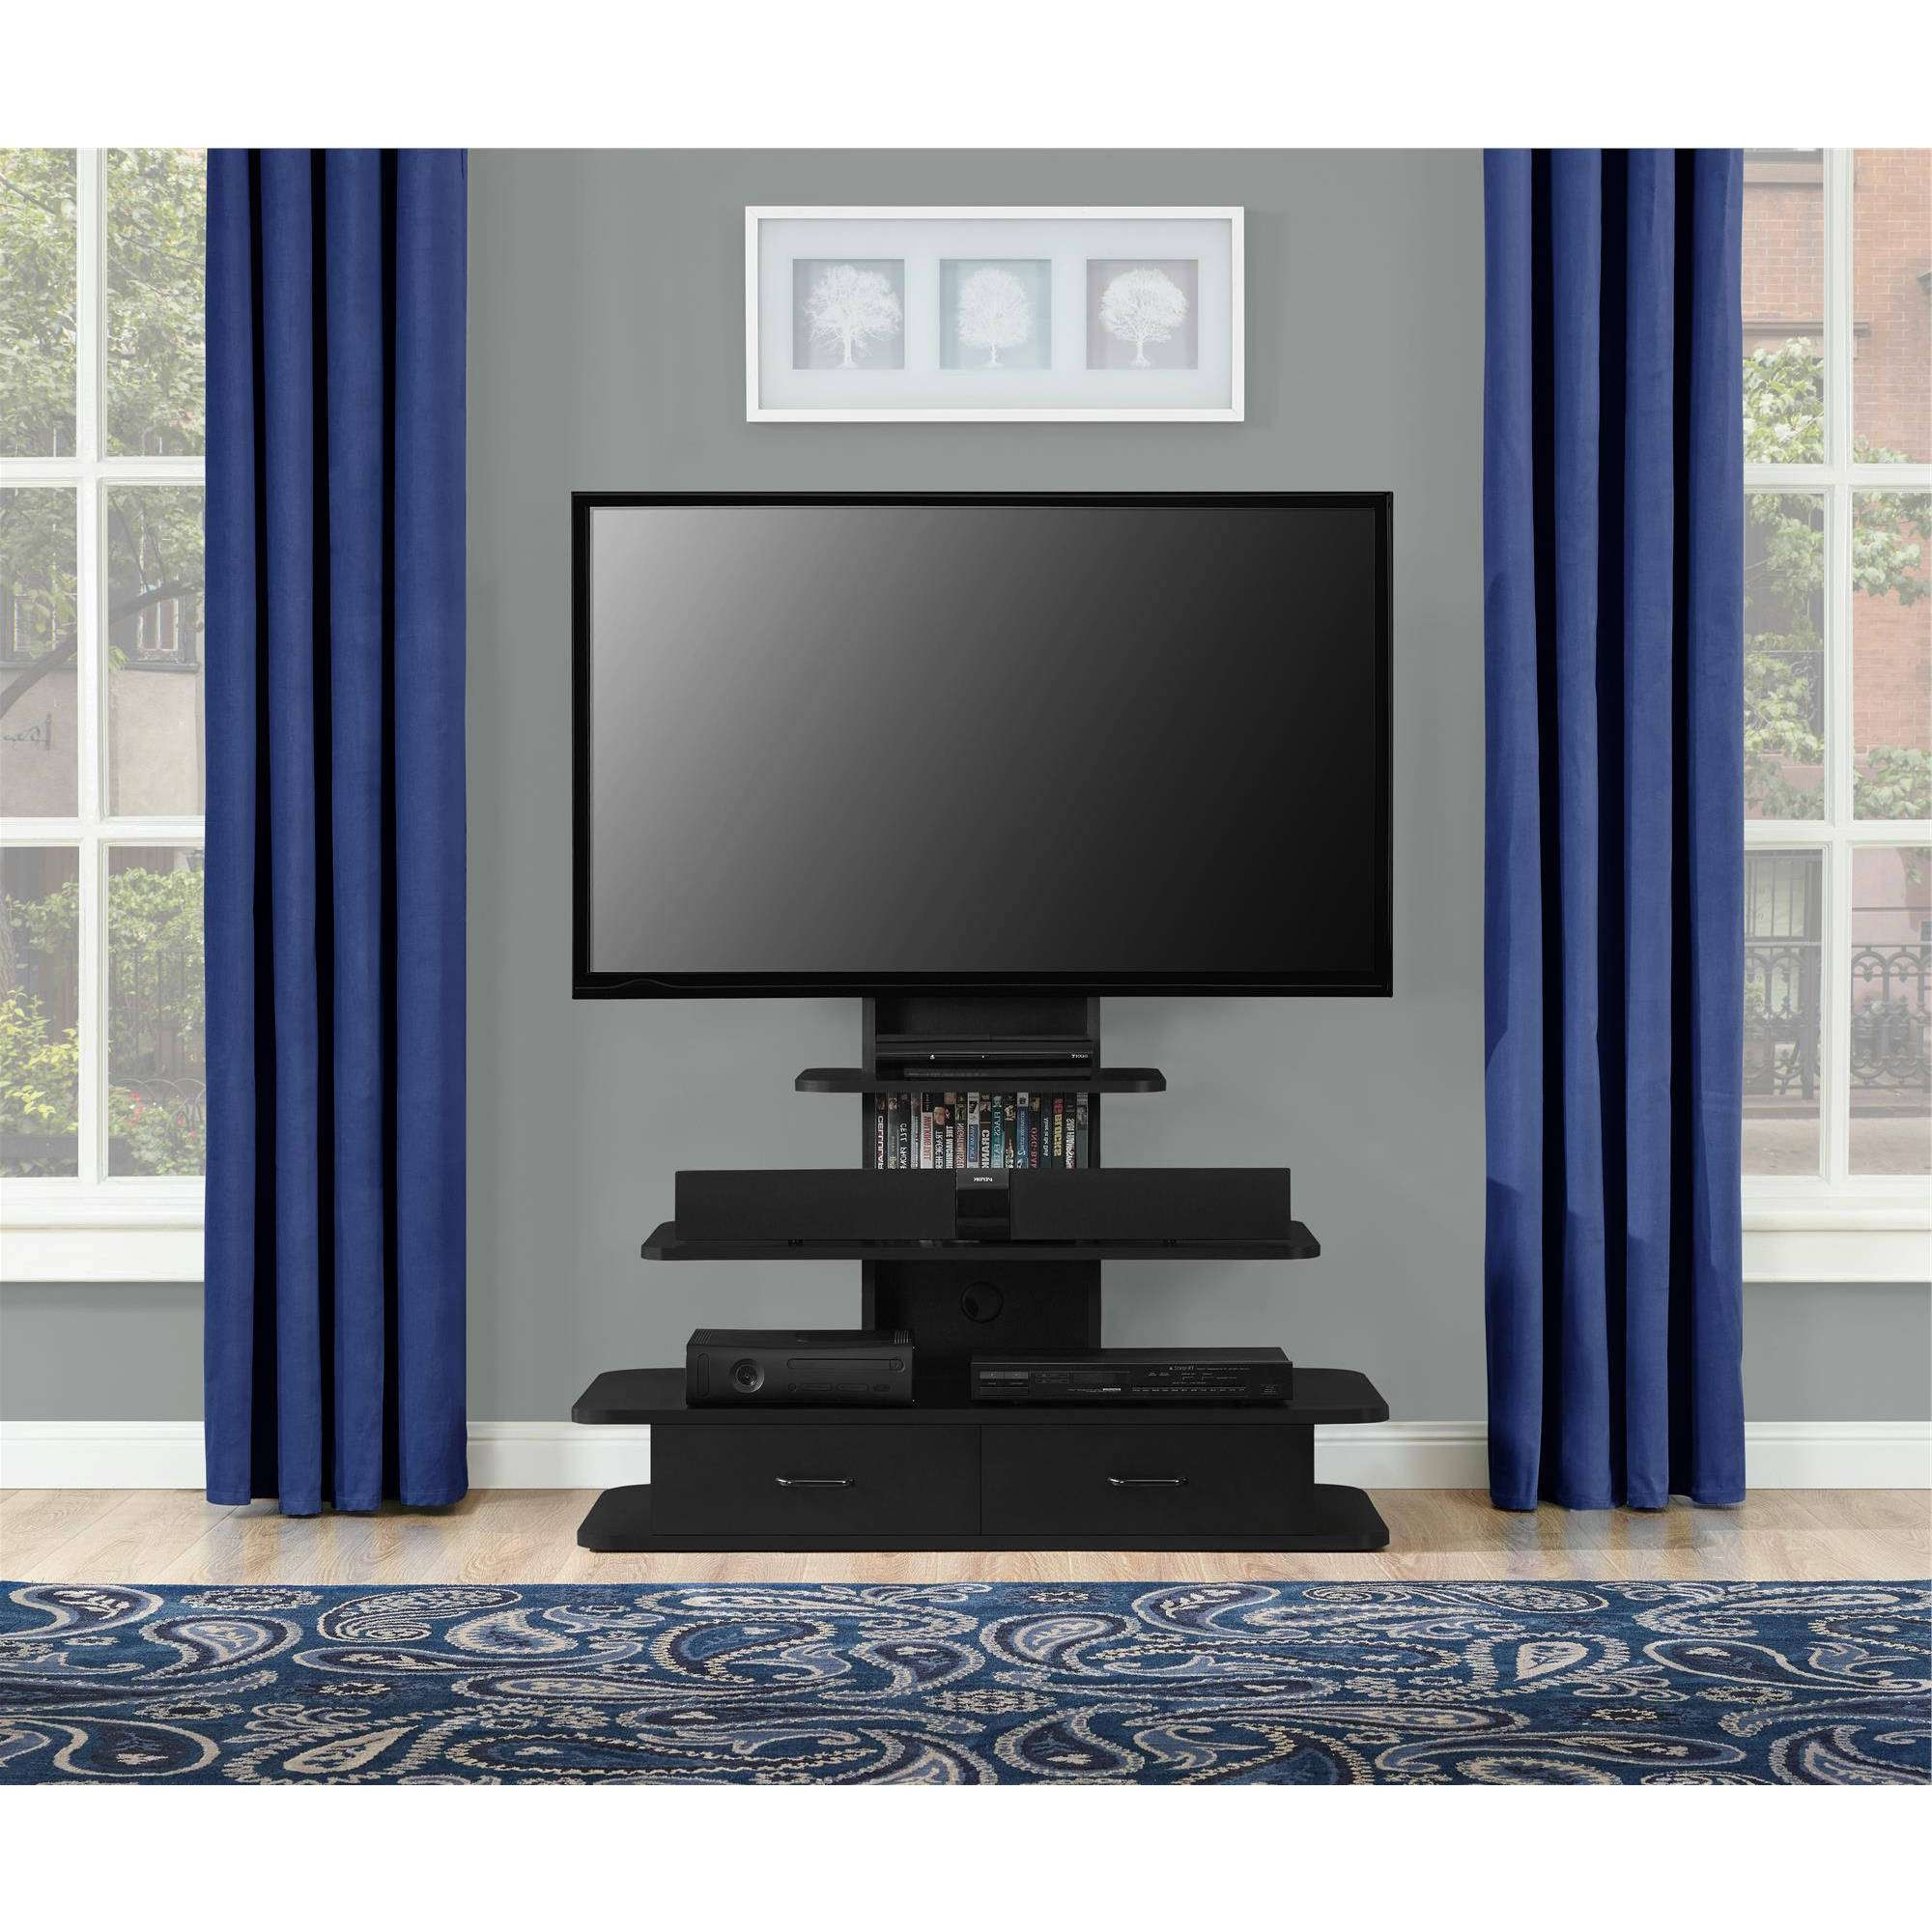 Black Freestanding Tv Stand With Mount And Drawers Of Cool Tv Within Freestanding Tv Stands (View 2 of 15)